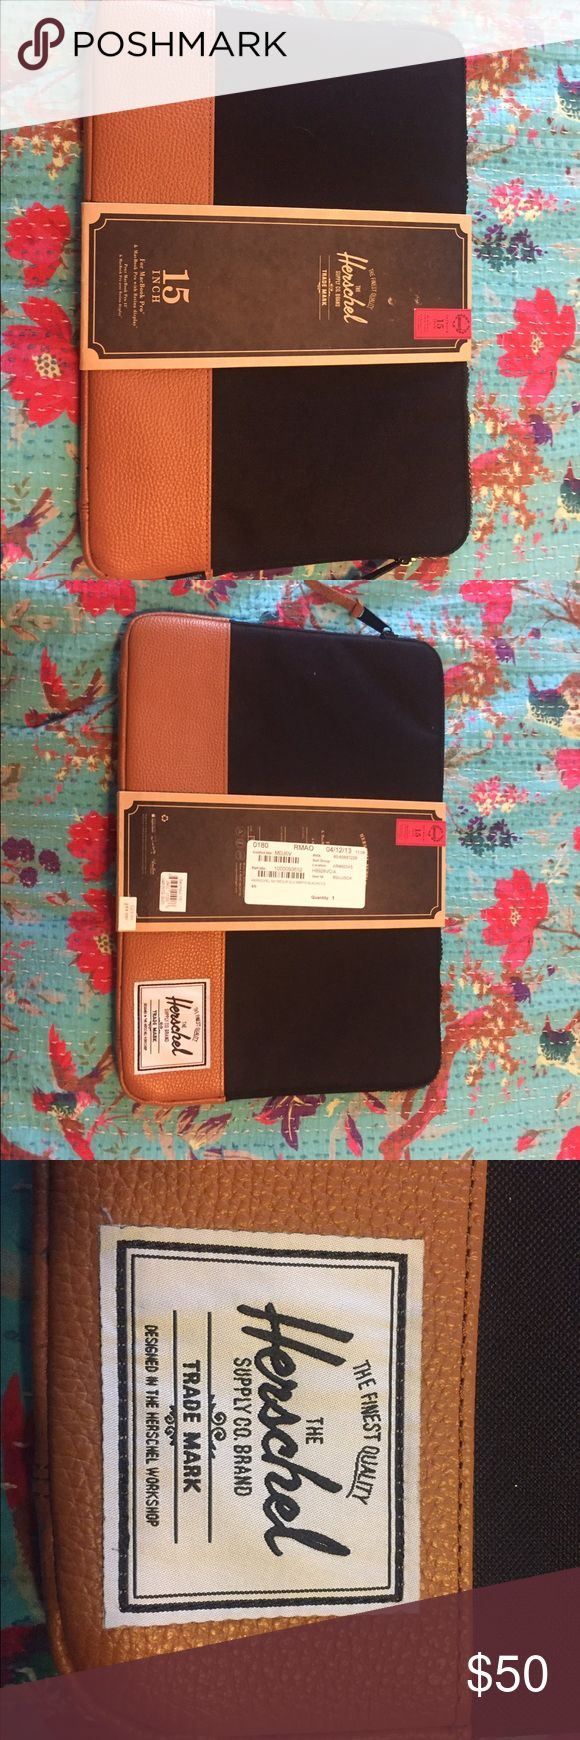 Herschel Laptop Case for MacBook Pro 15 inch This is a BNWT Black and Tan laptop bag for a MacBook Pro 15 inch! Bundle for free shipping! Just take $7 out of the total price and you're good to go! ✔️ As always, make me an offer I 🙅🏼 refuse!  Coming from a 🚬 free home!  🚫NO TRADES🚫 Caution: I do own pets! 🐱🐶🐱 your items will arrive free of hair or dander. Herschel Supply Company Bags Laptop Bags